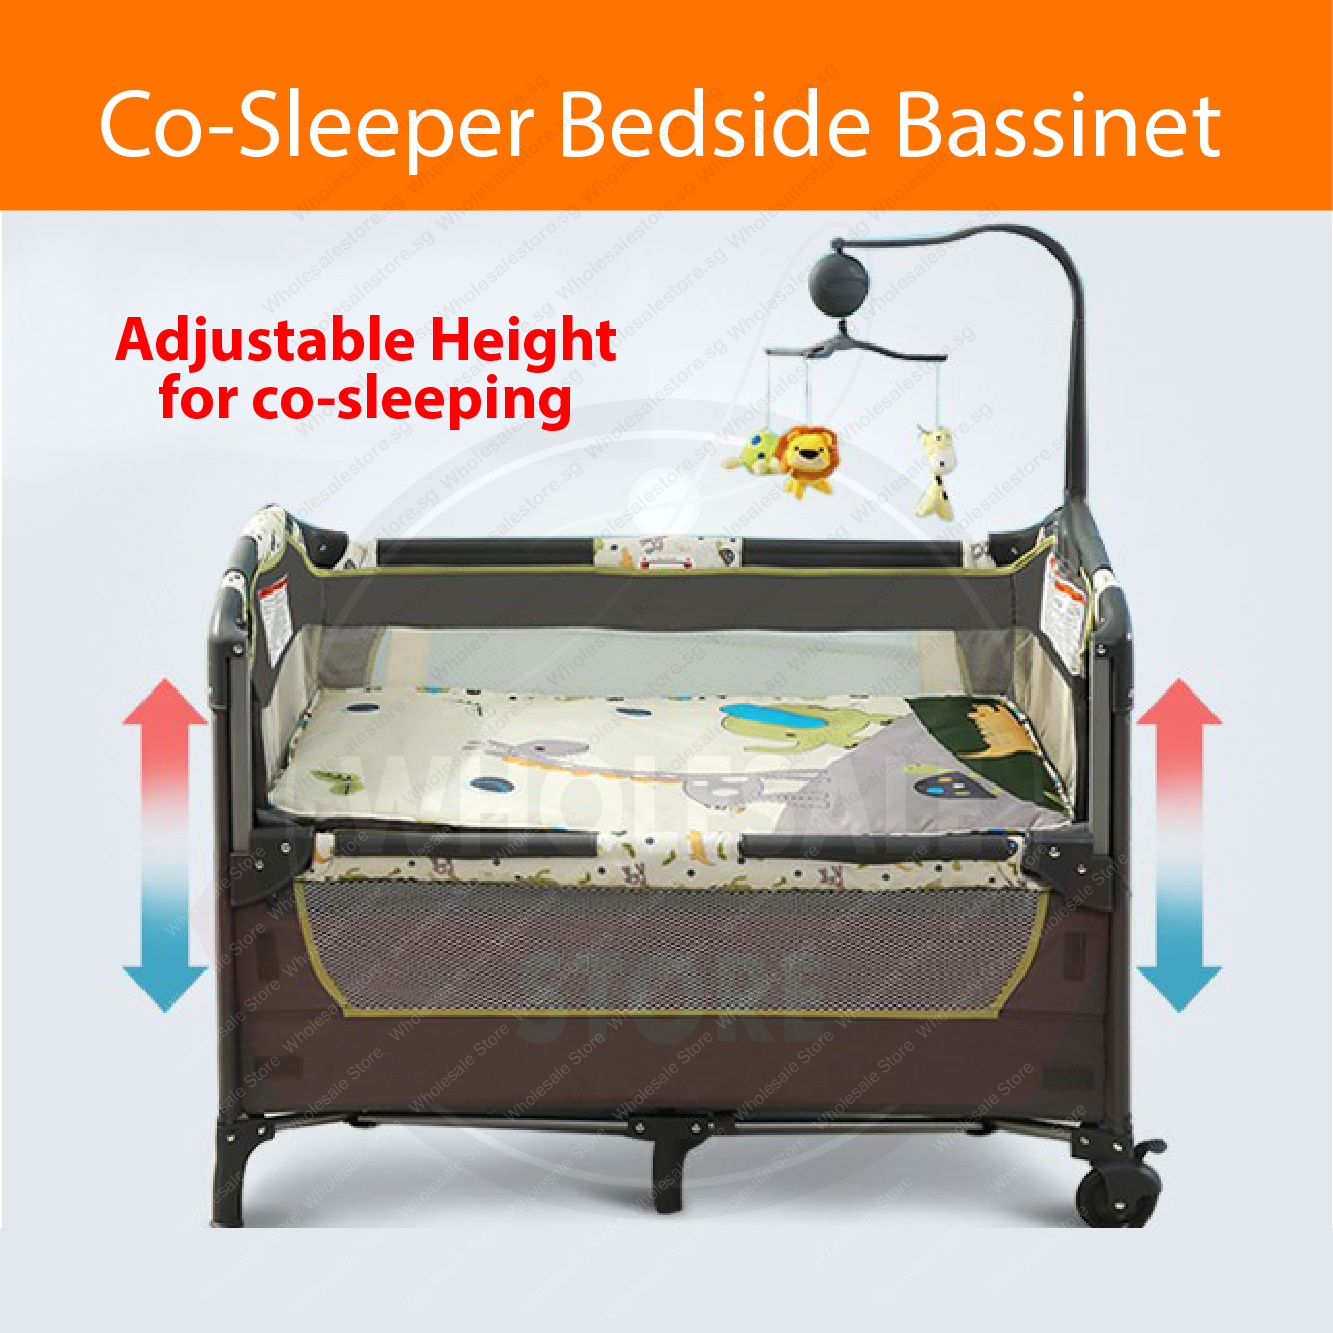 Baby Playpen Height 3 In 1 Co Sleeper Bedside Bassinet Baby Cot Babycot Baby Crib Playpen Baby Bassinet